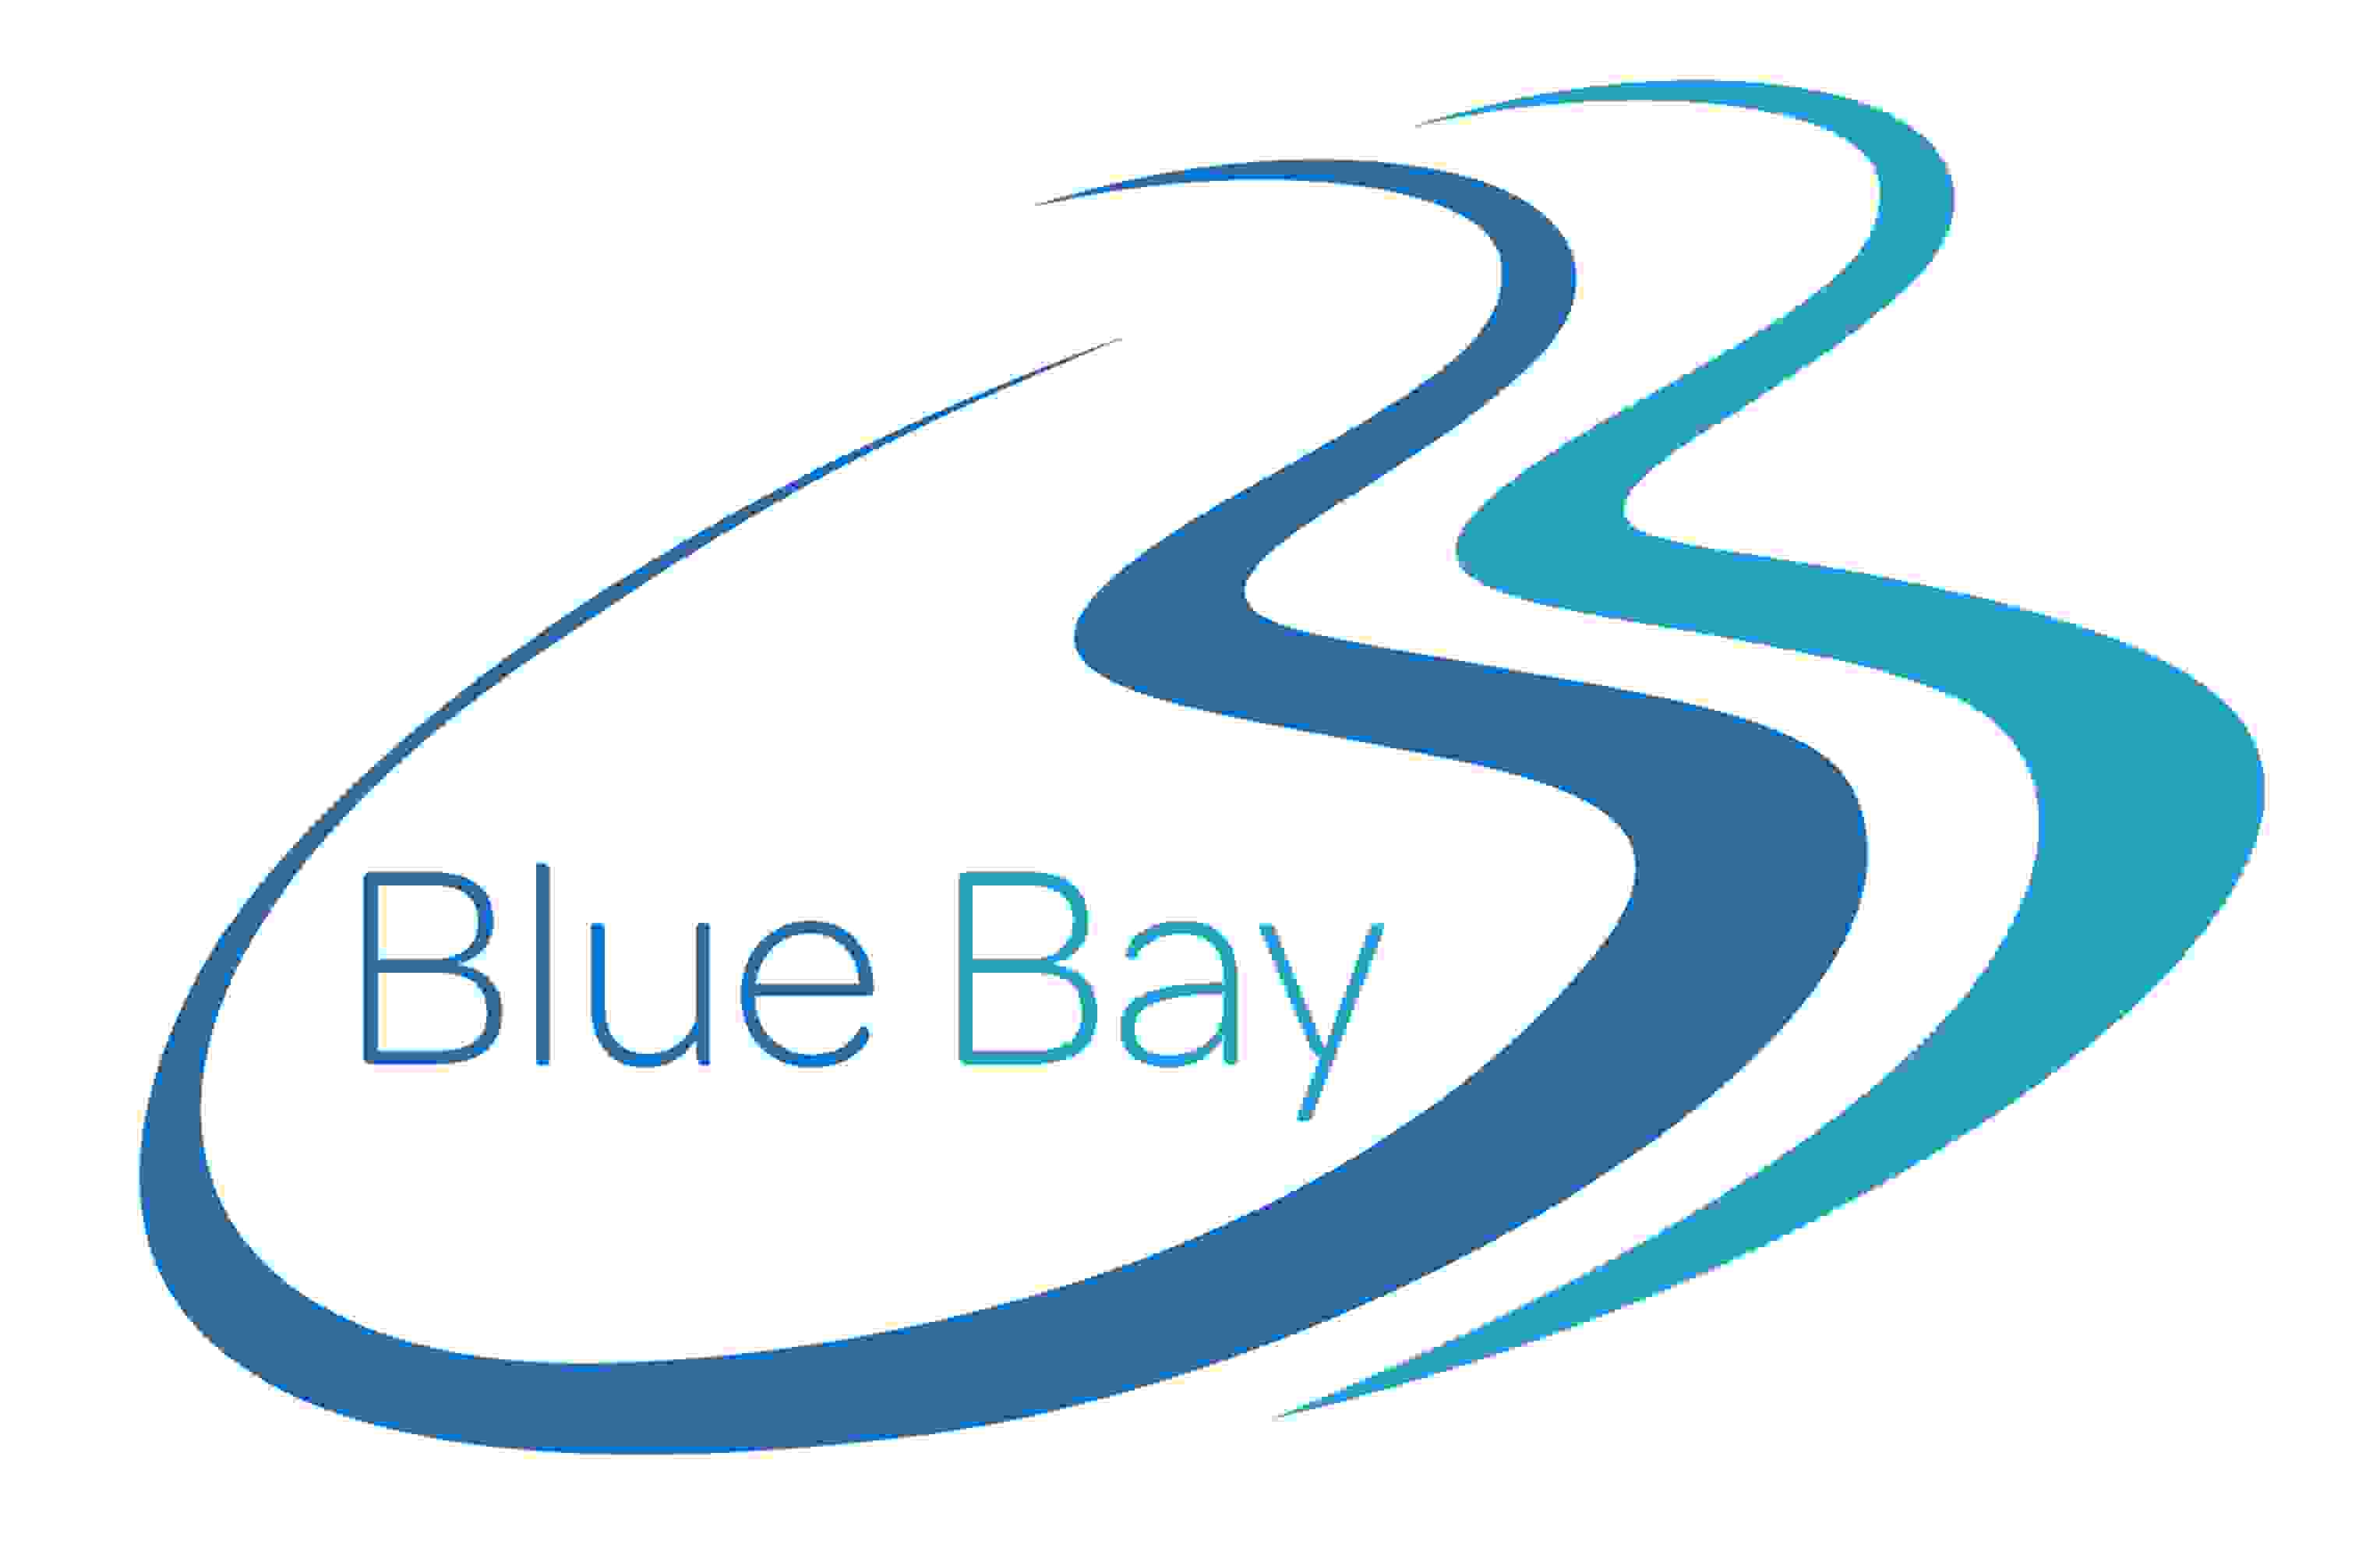 https://www.alpc.nl/htmlfiles/logos/blue bay.jpg